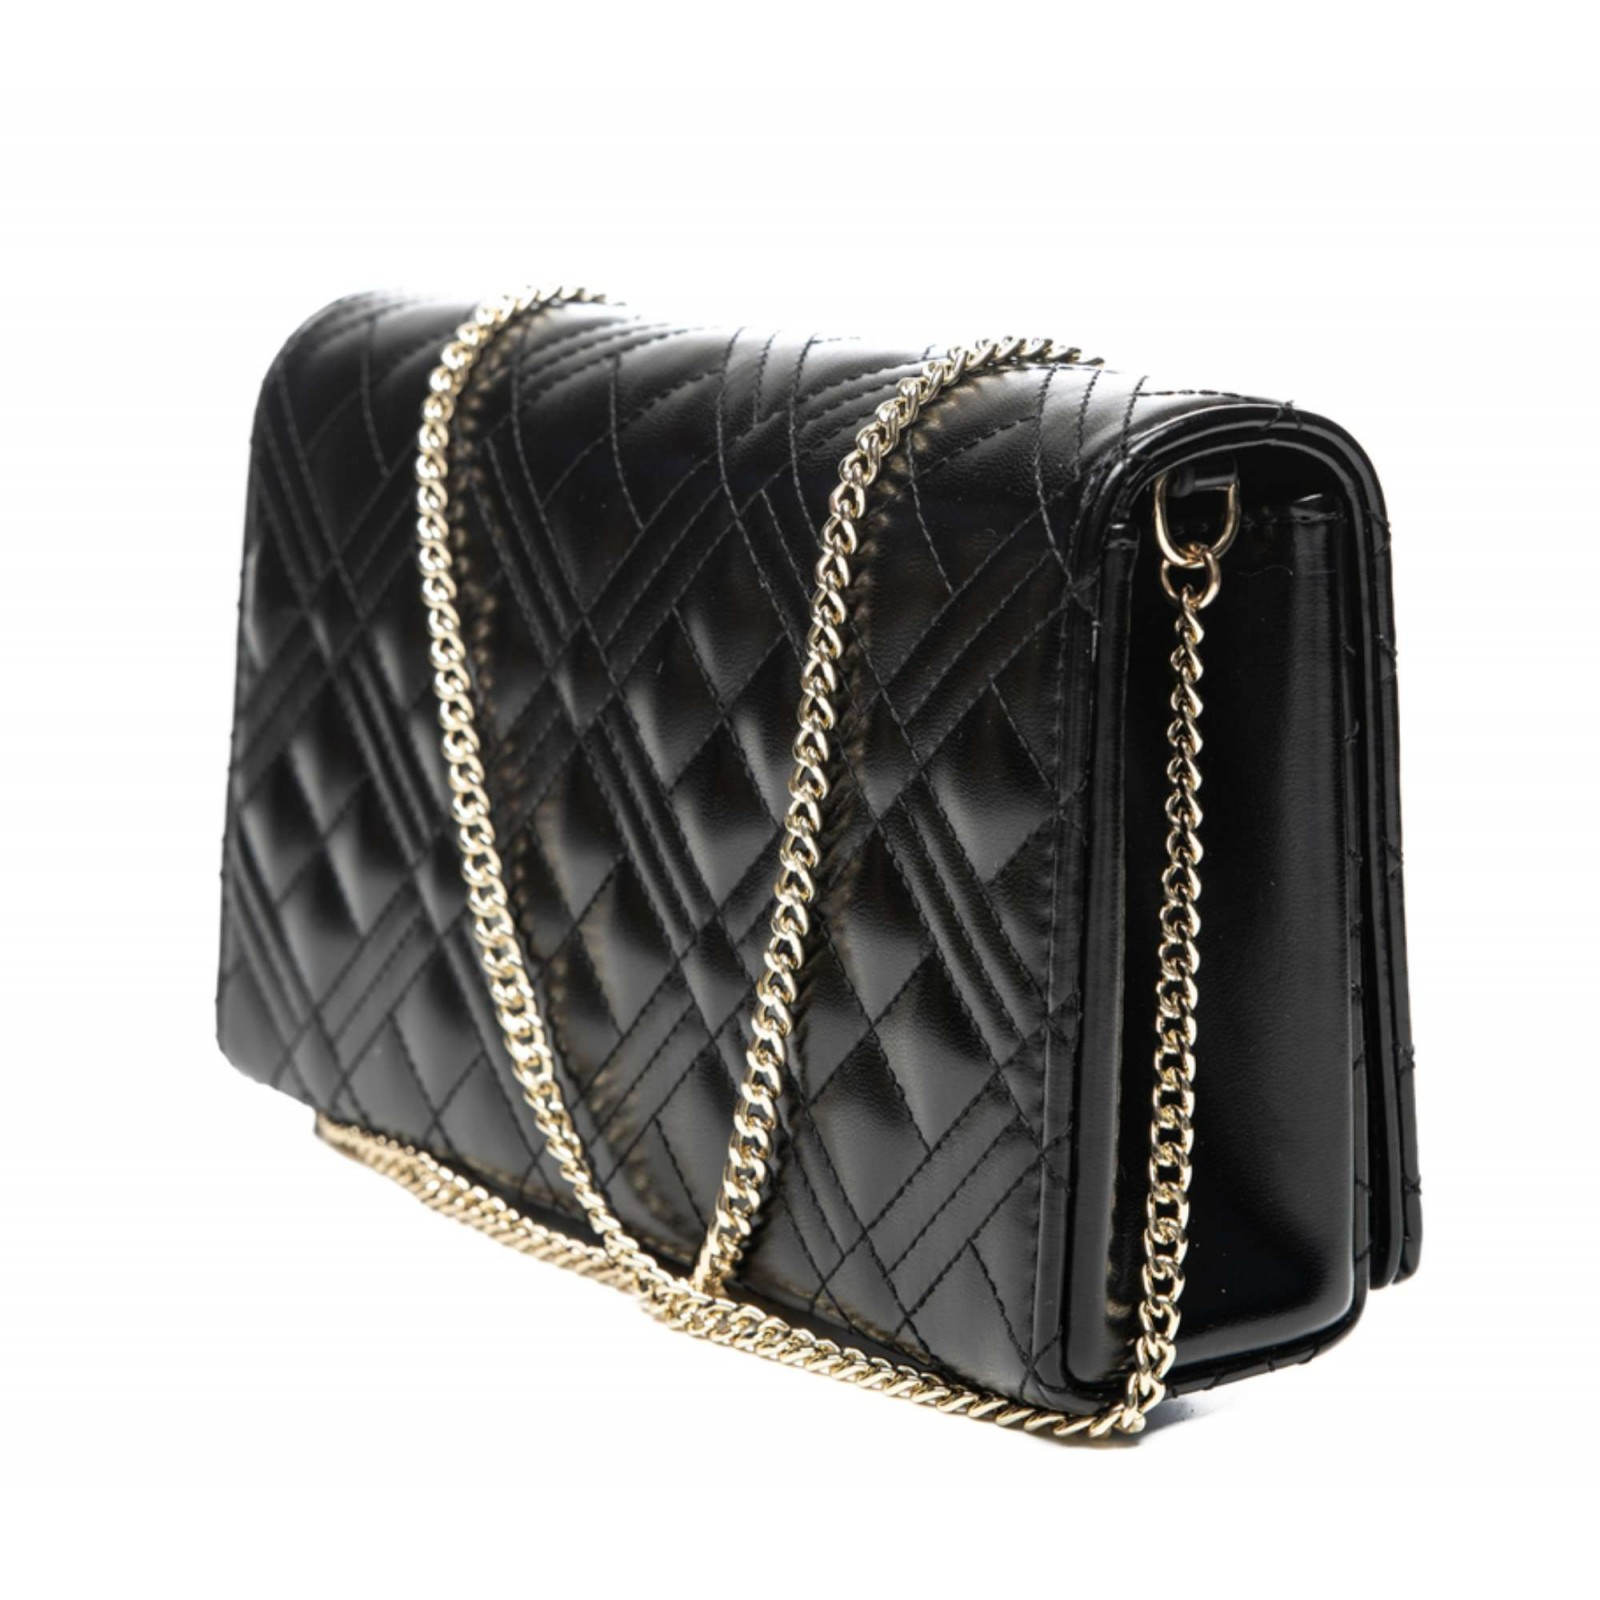 Borsa donna Love Moschino tracollina clutch in ecopelle